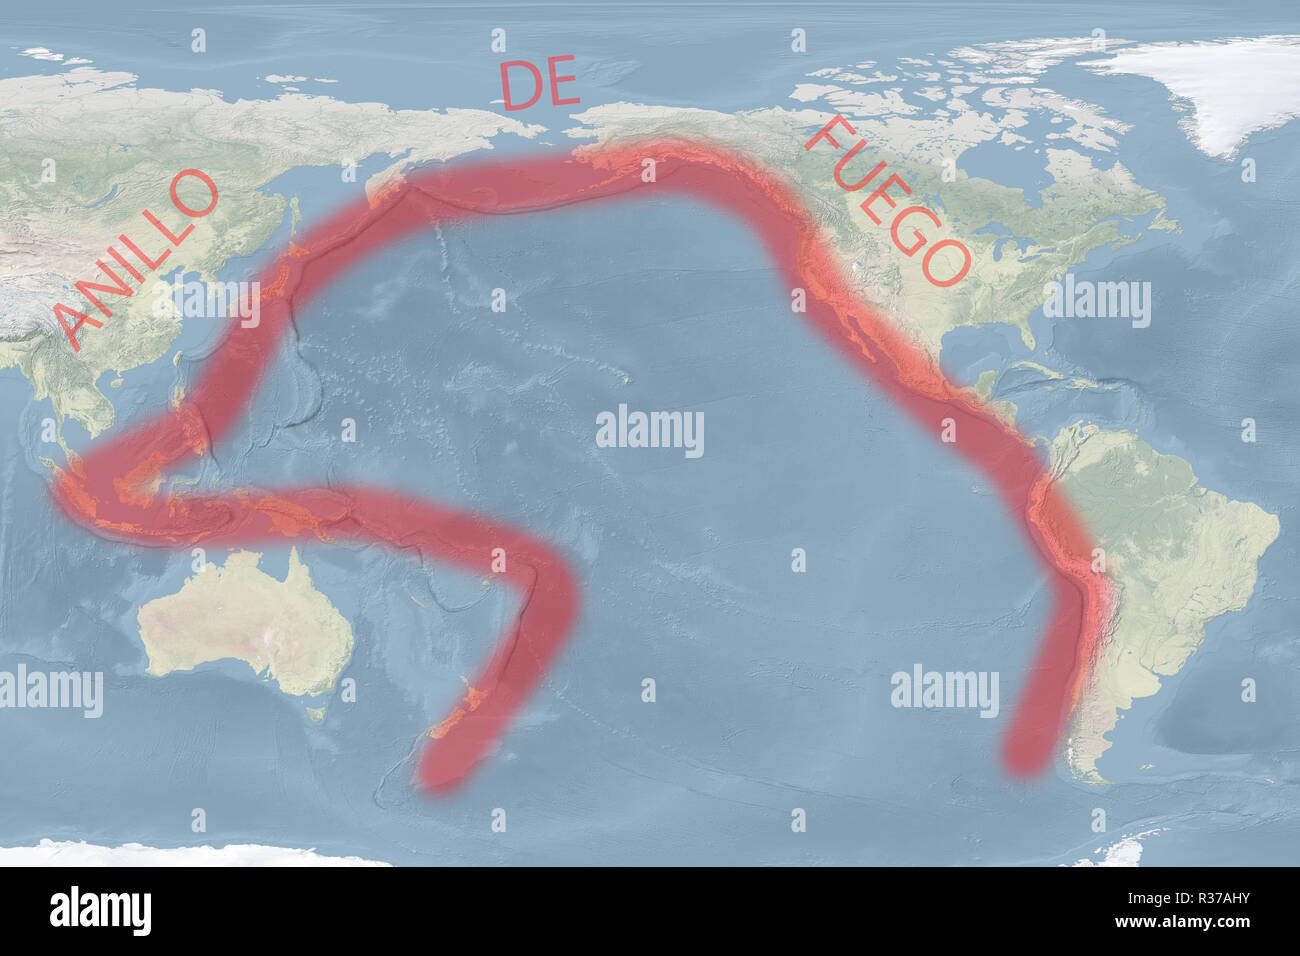 Pacific 'Ring of Fire' map (Spanish-version) (image for illustrative purposes only) - Stock Image